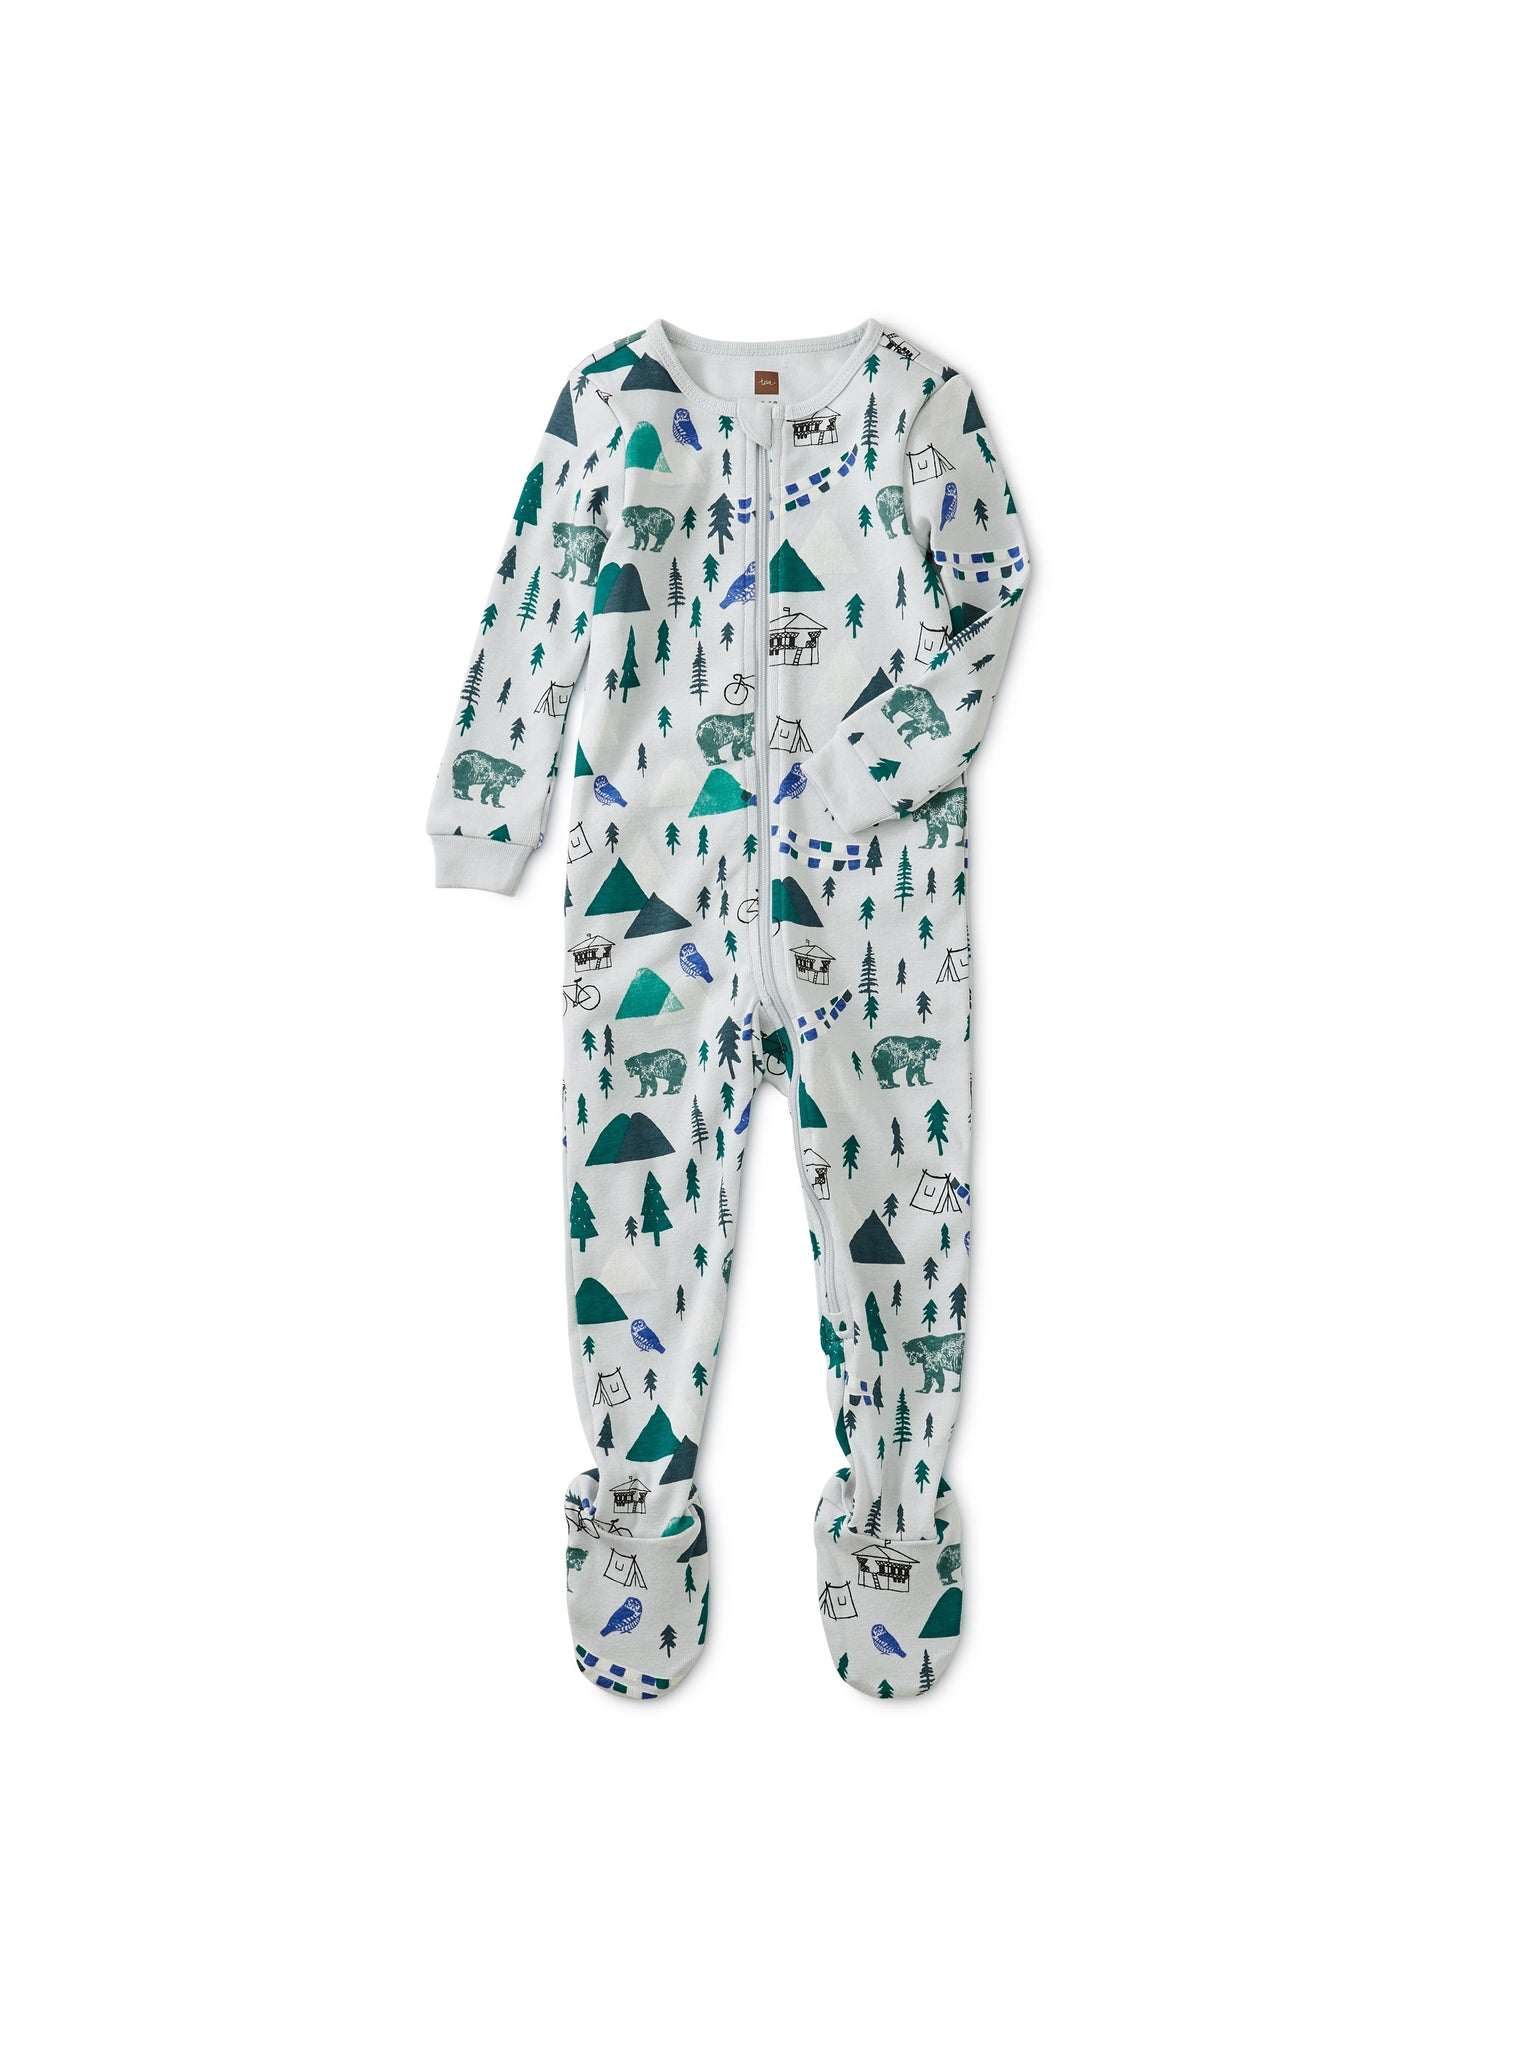 Long Sleeve Footed Pajama - Campground